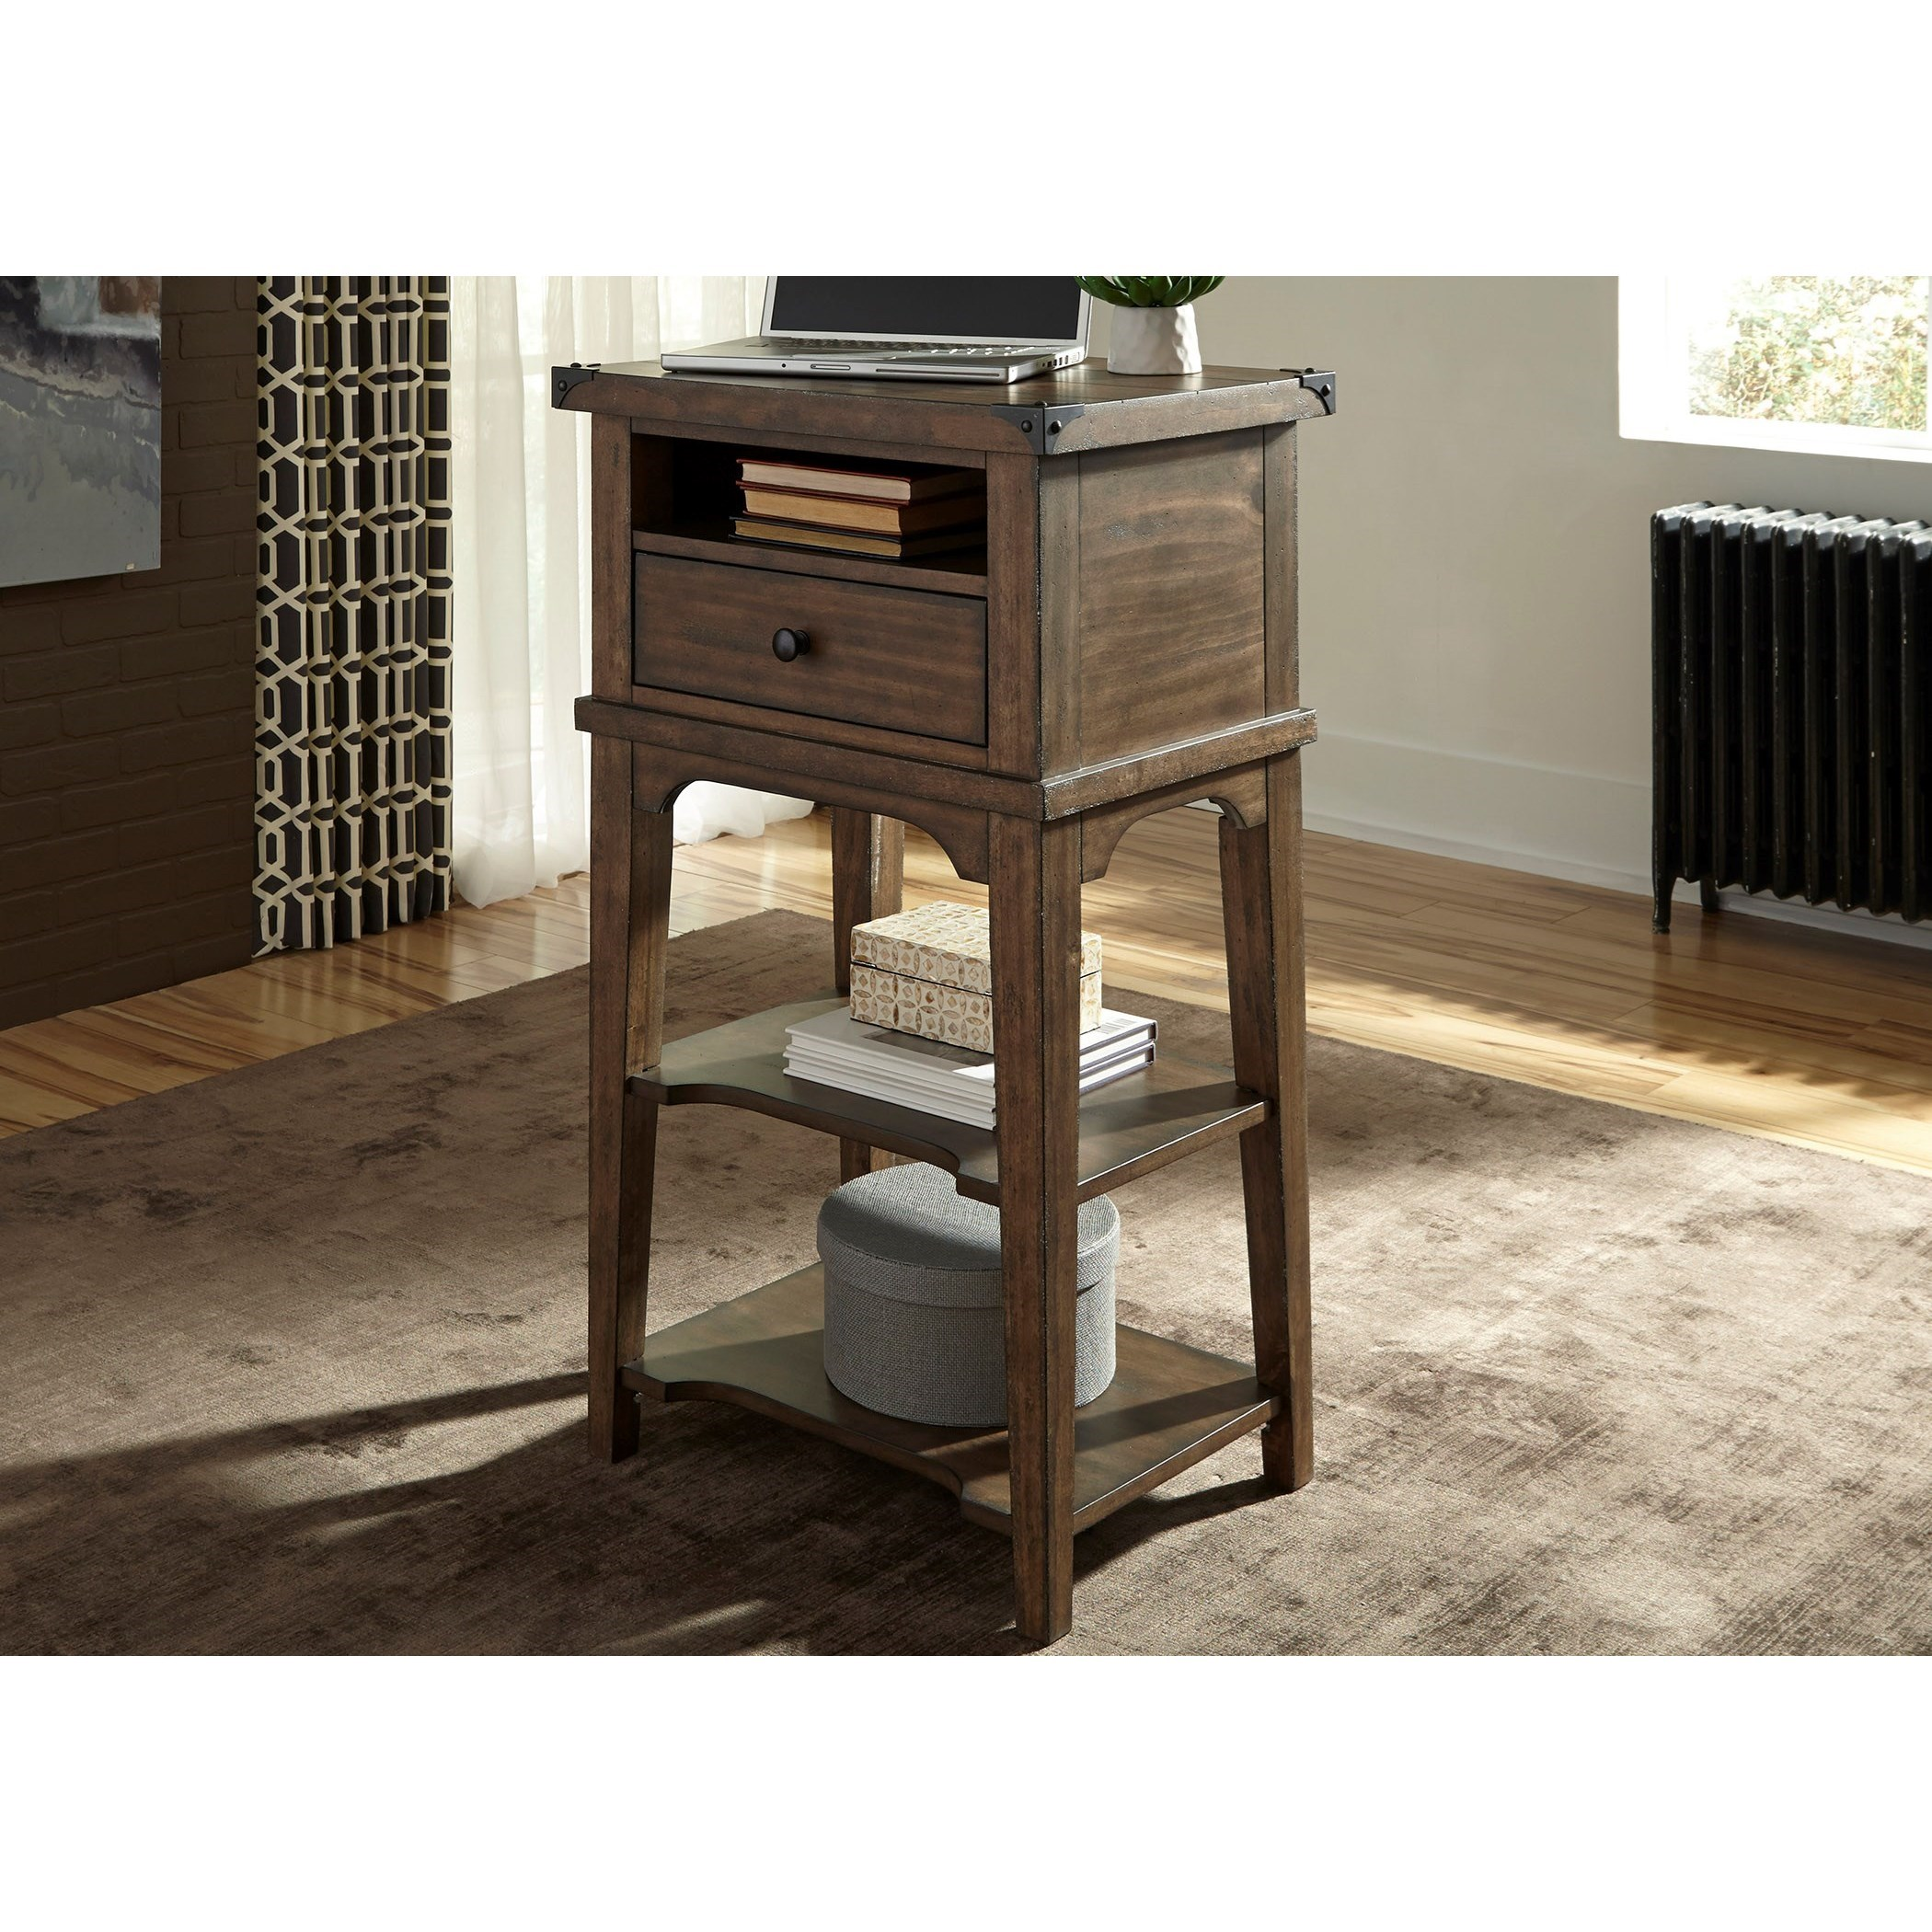 Liberty furniture aspen skies 416 ot5000 stand alone for Mackinzie craft room table